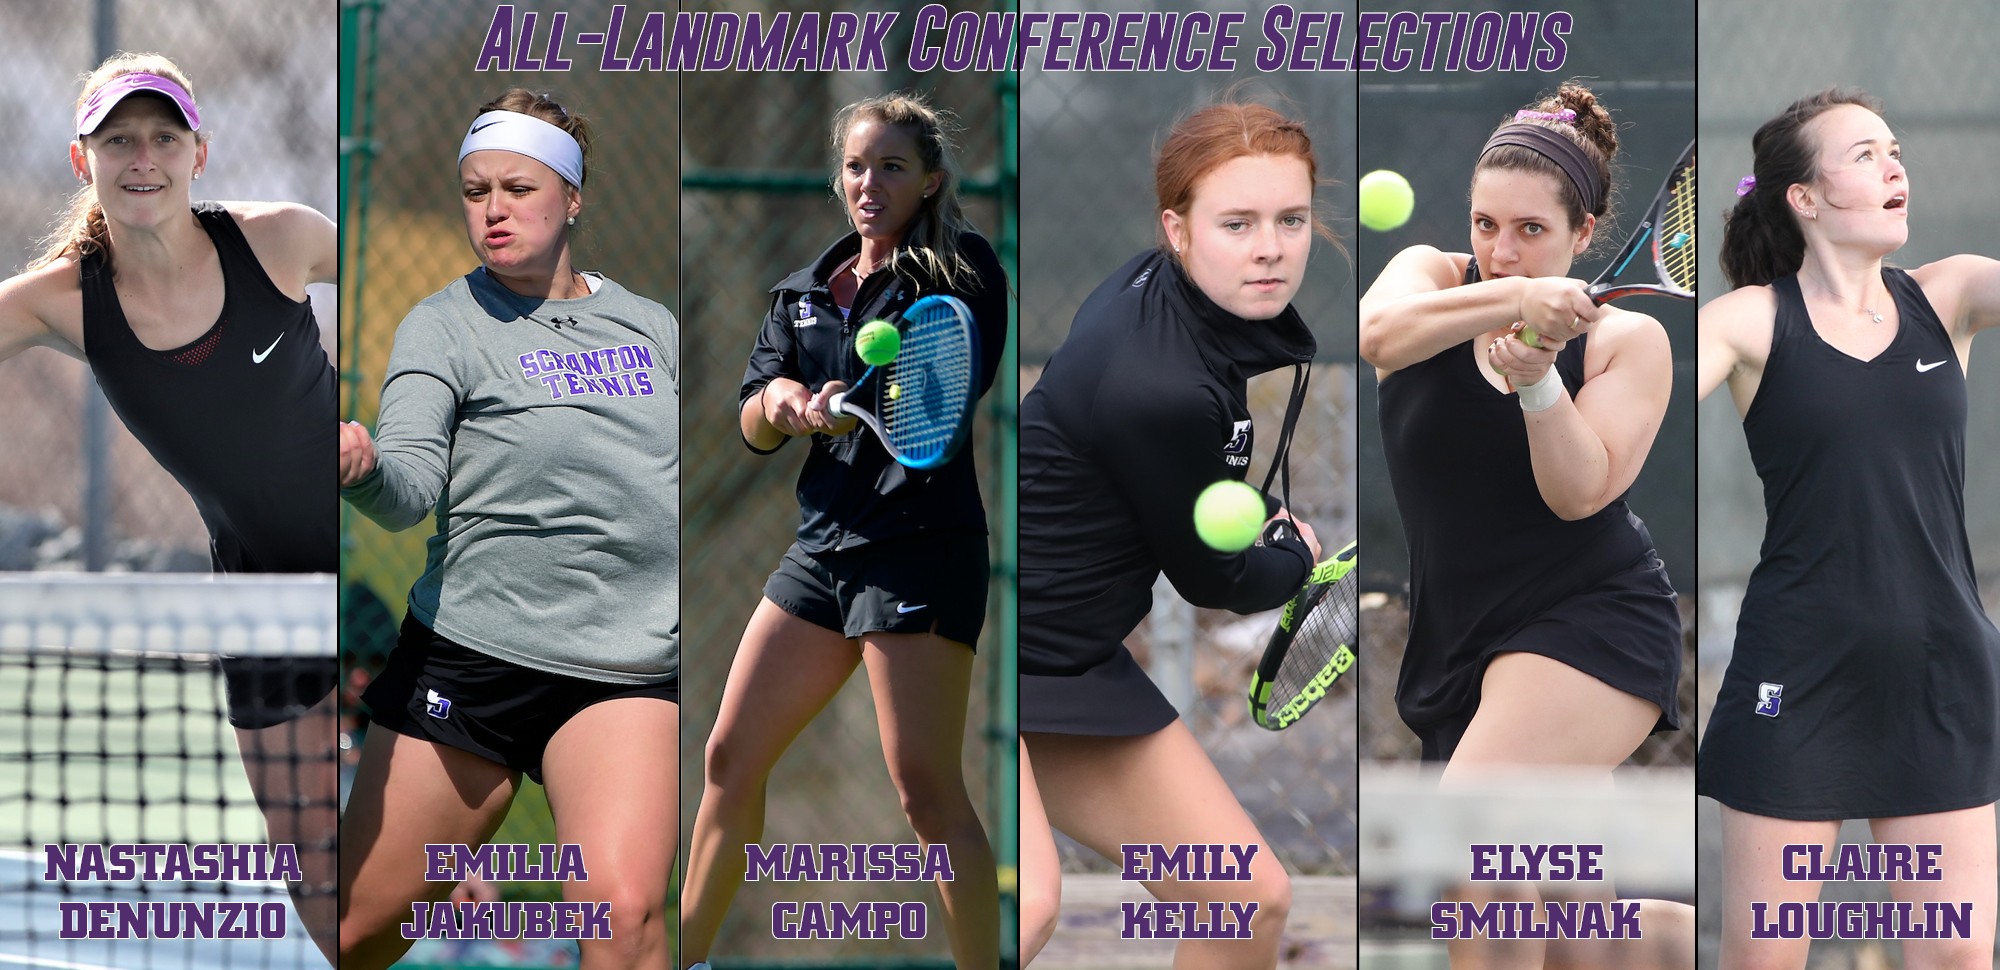 DeNunzio Named Player of the Year to Headline All-Landmark Conference Women's Tennis Selections